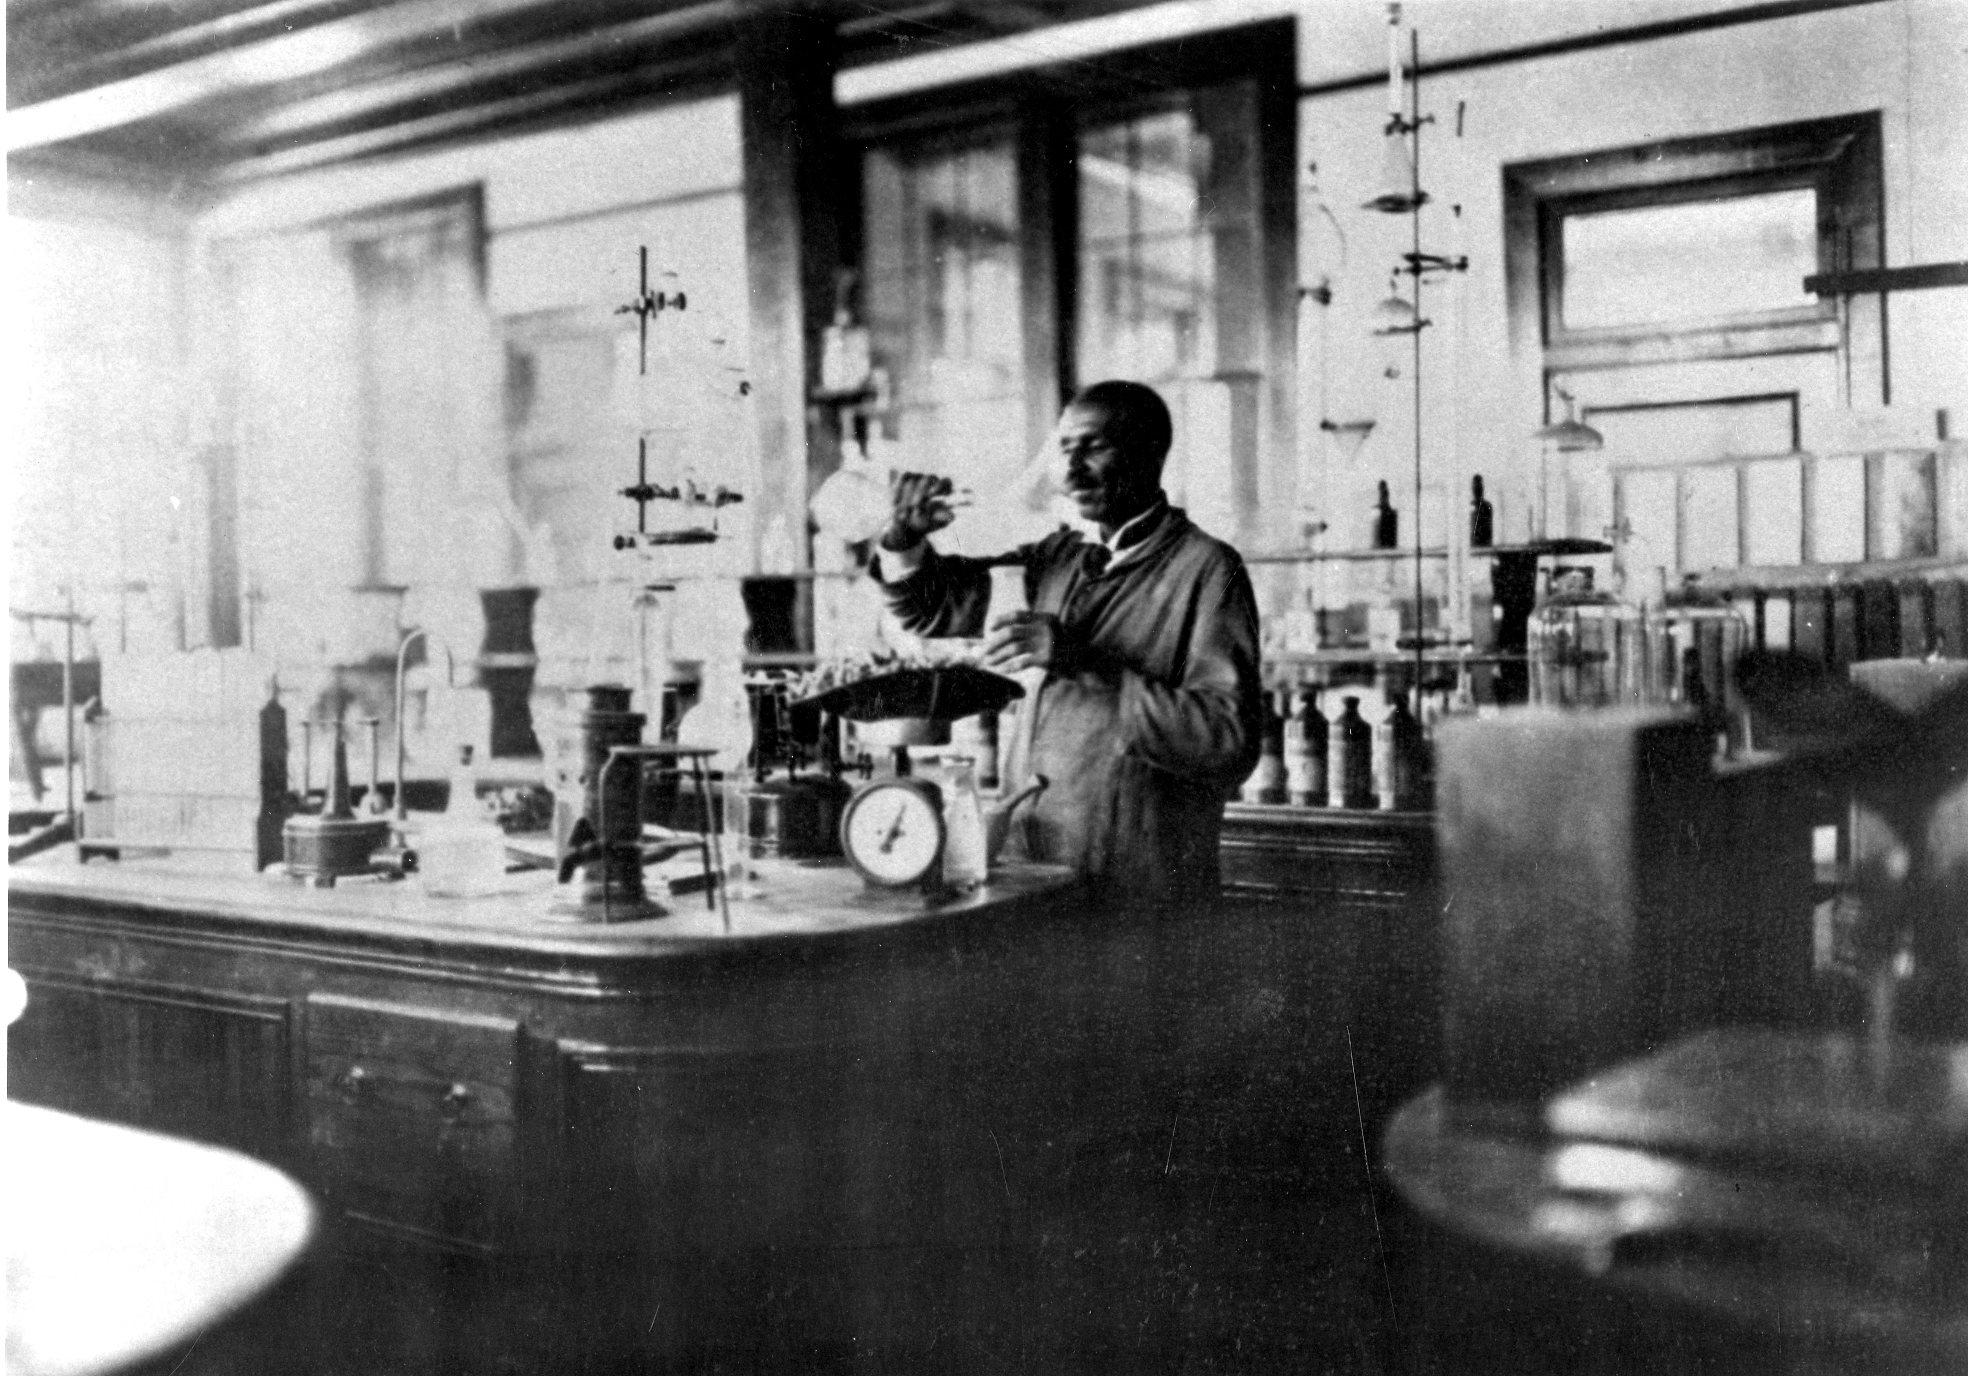 George Washington Carver at work in his laboratory